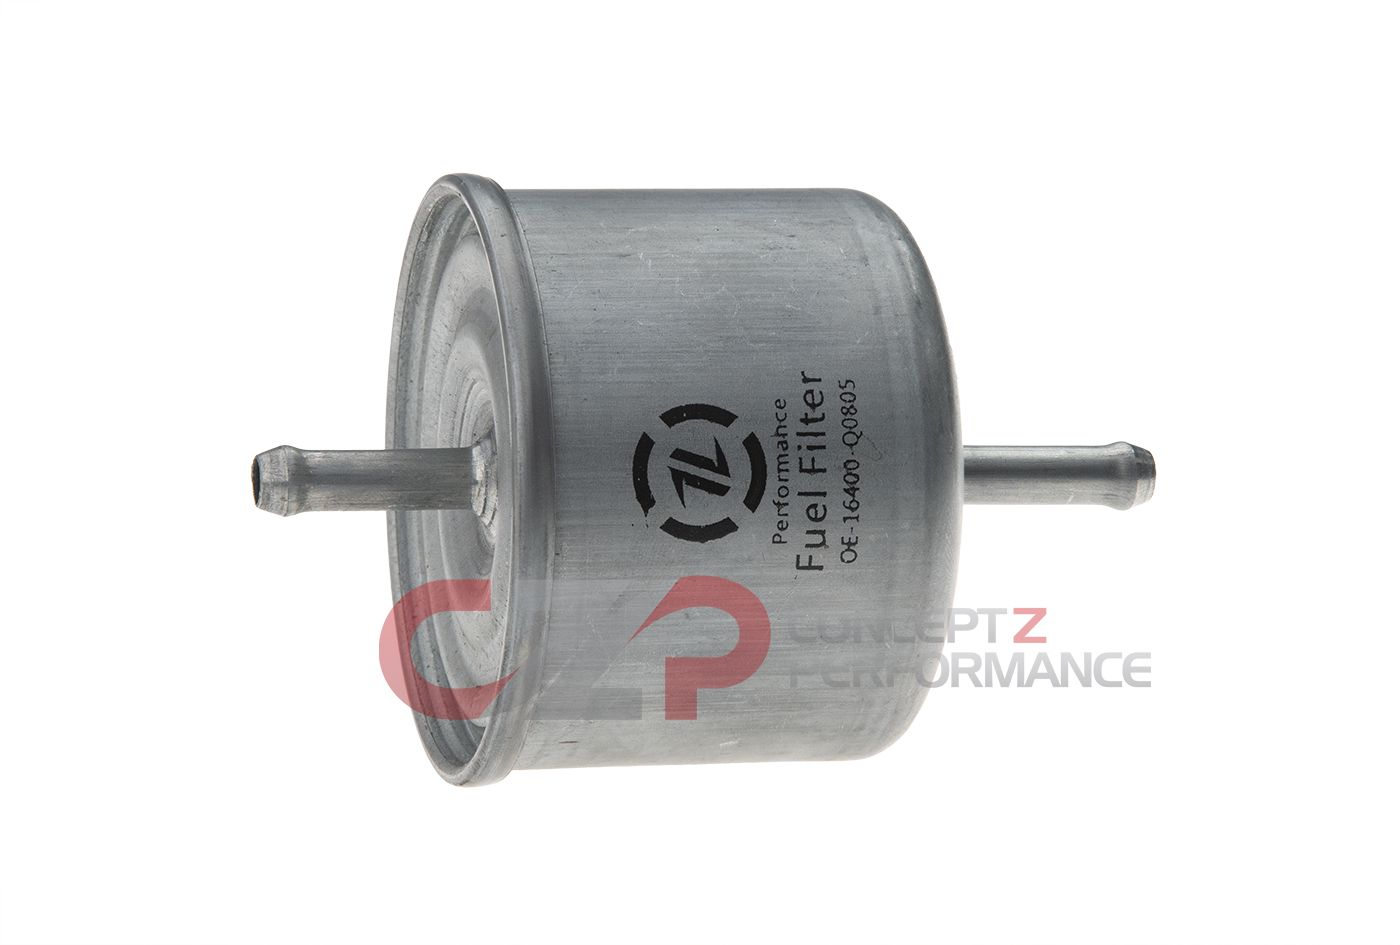 hight resolution of isr performance oe replacement fuel filter nissan 300zx z32300zx fuel filter location 17